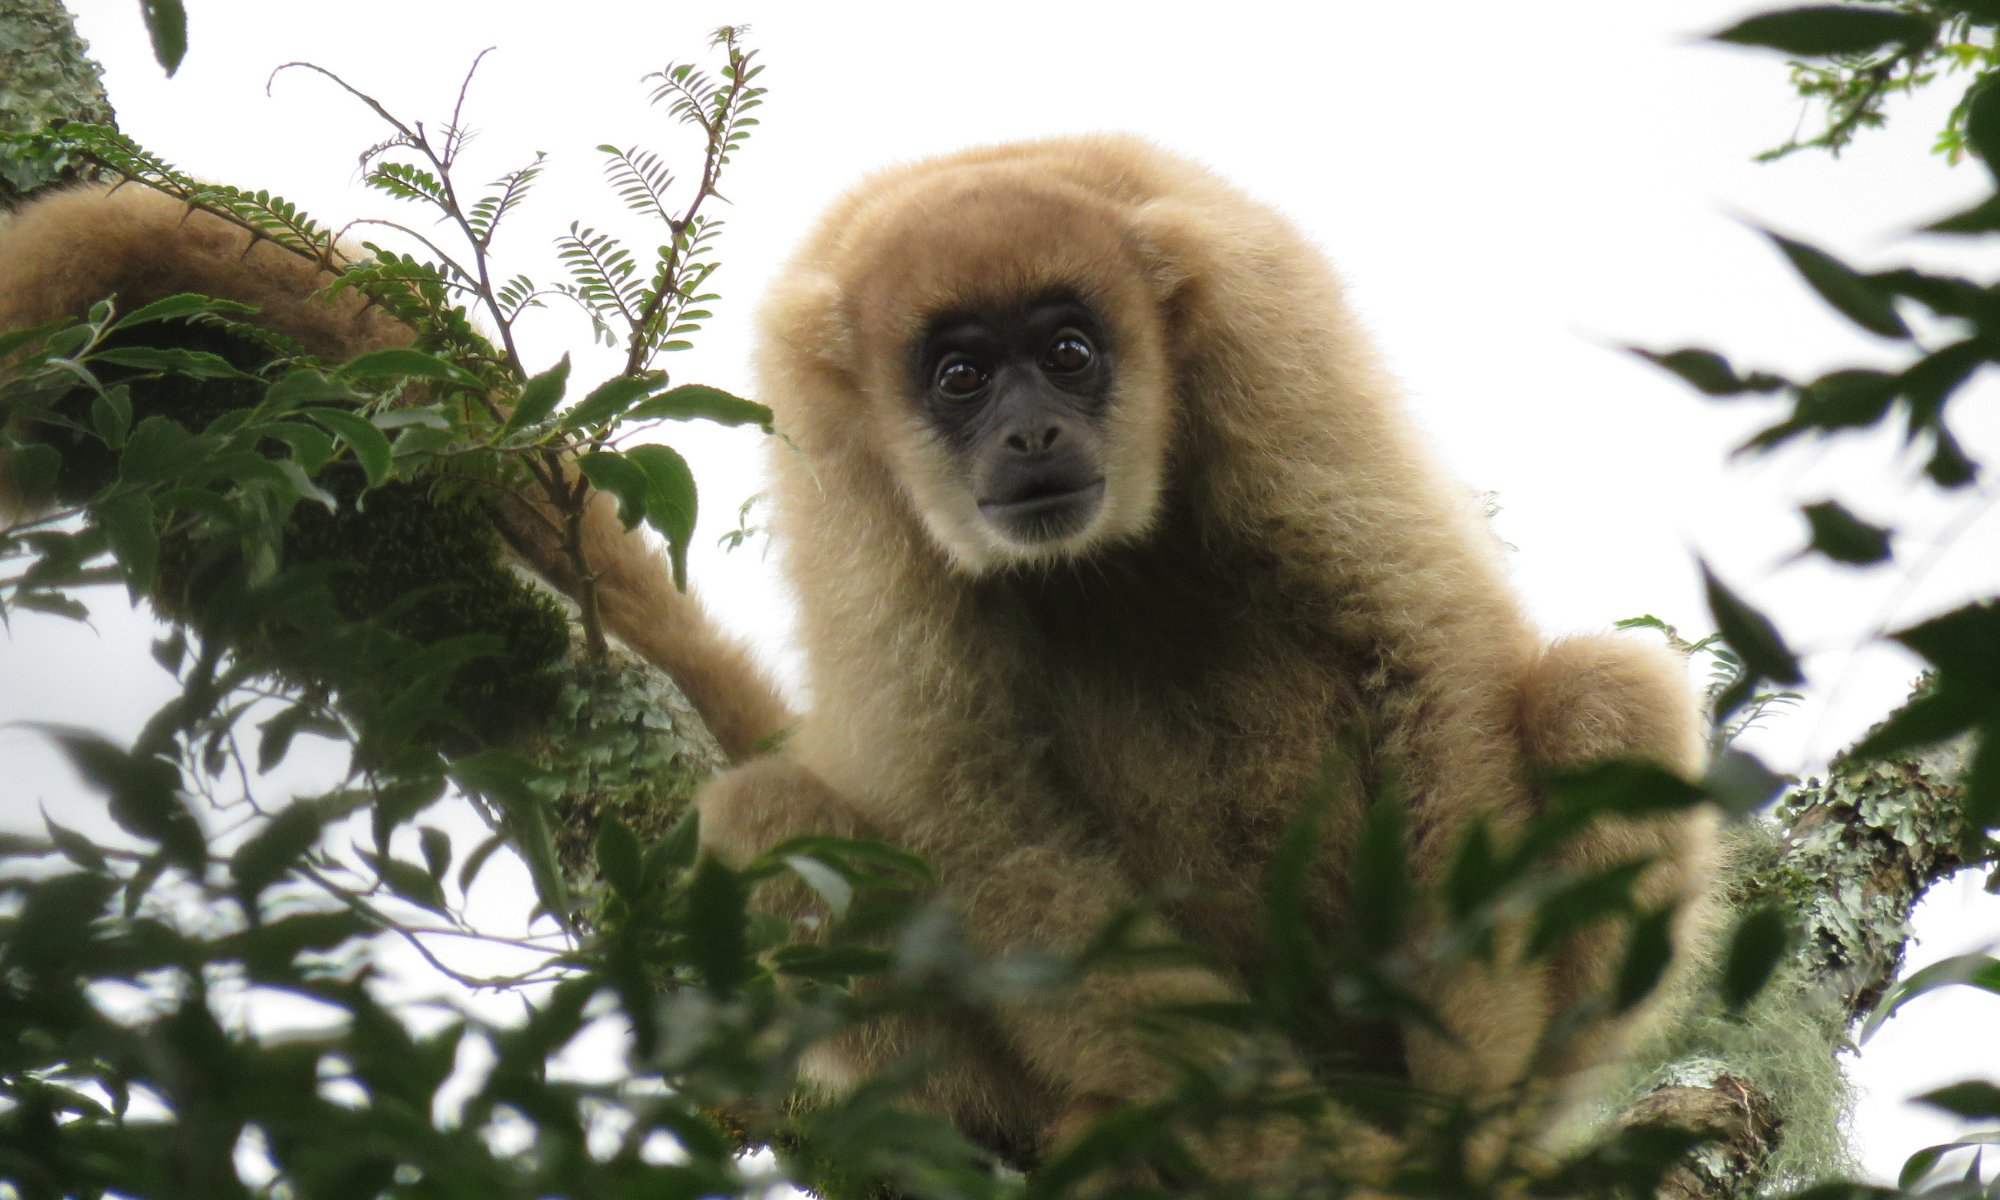 Canopy cameras shed new light on monkey business in Brazil